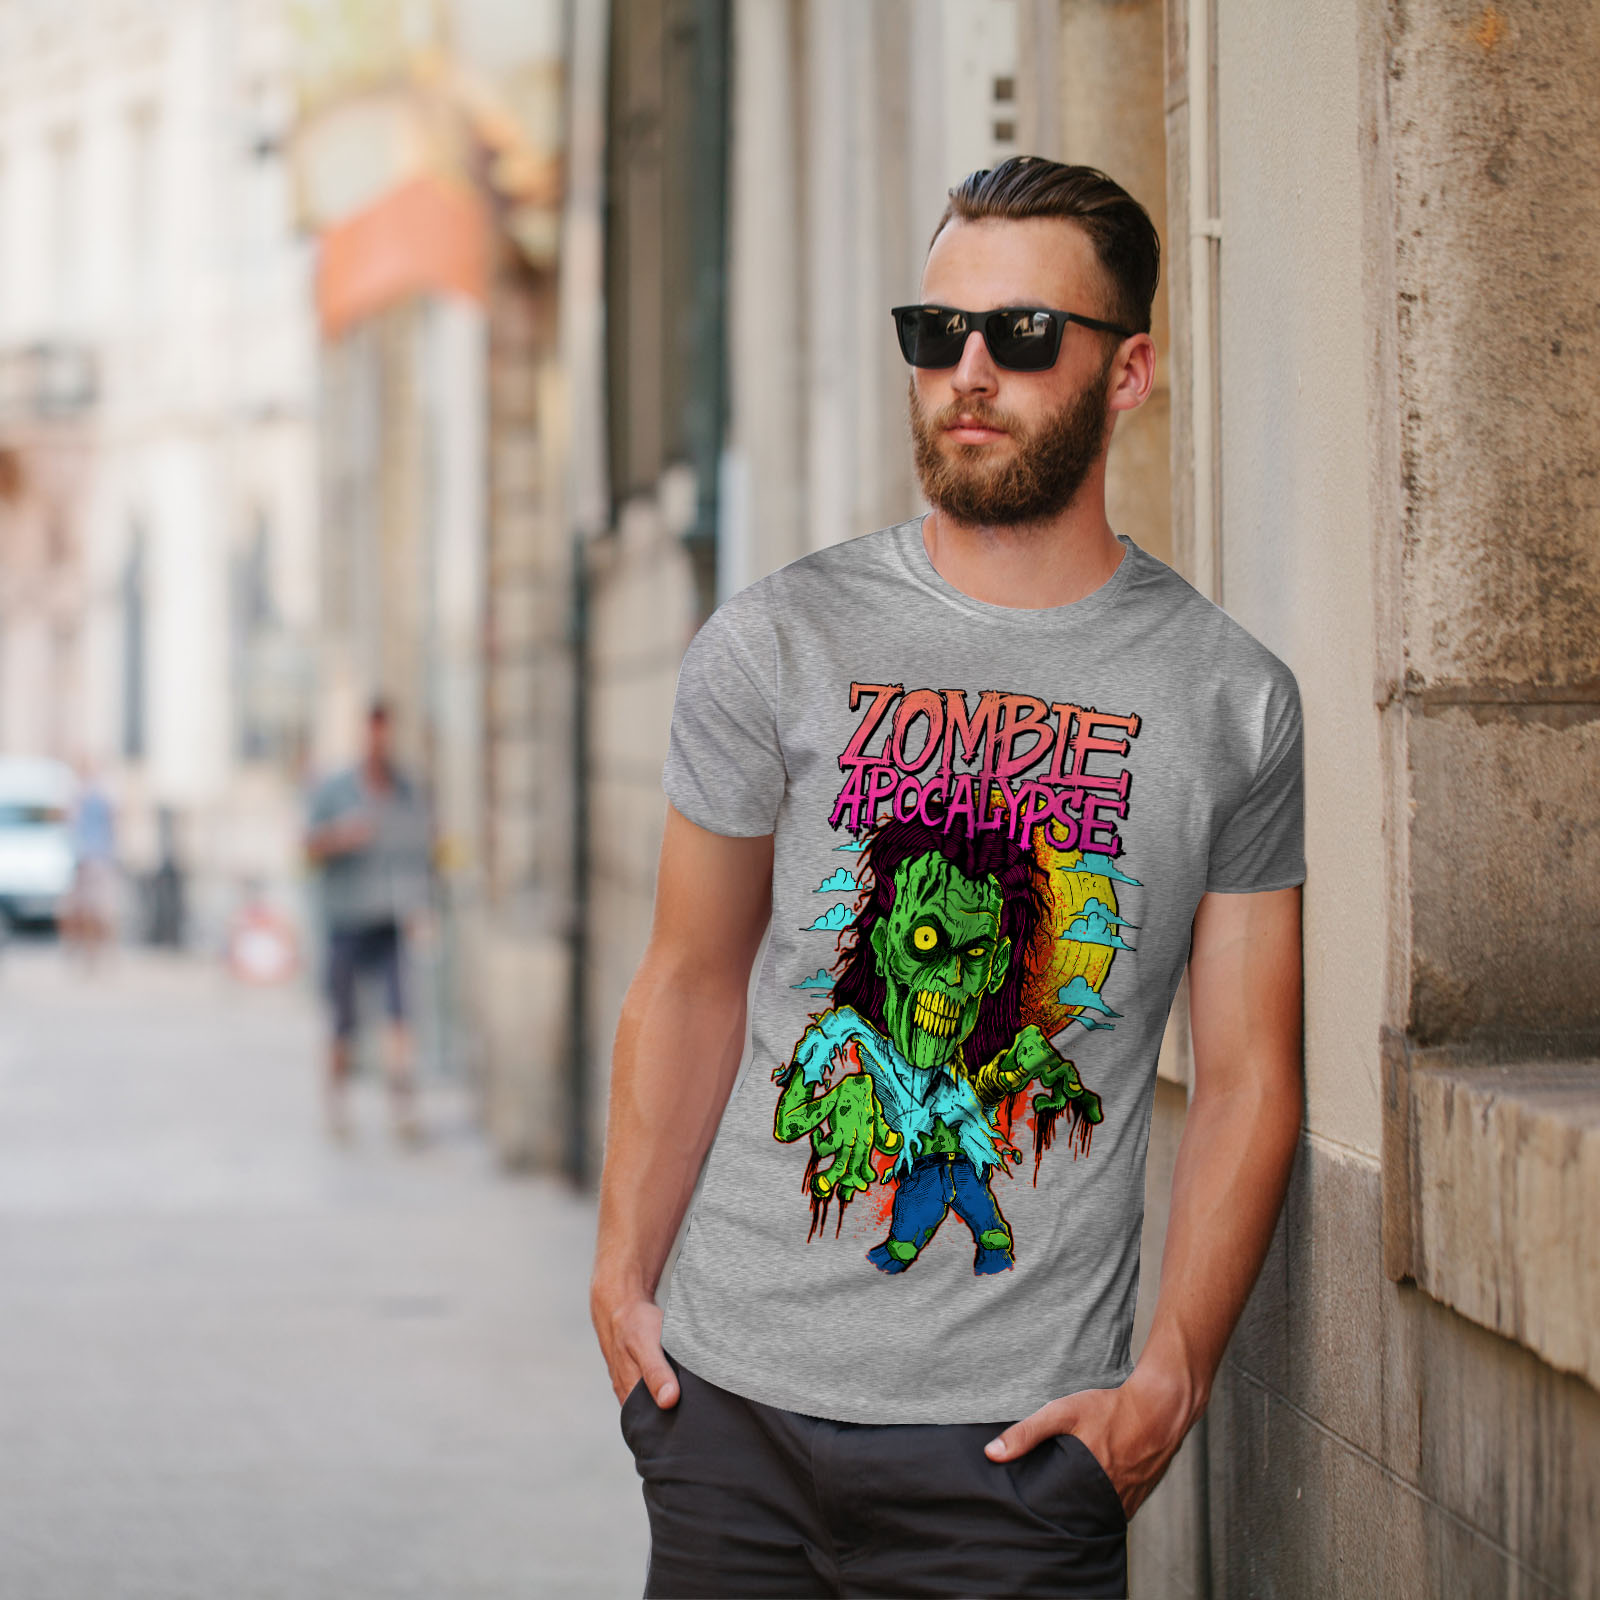 Wellcoda-Zombie-Apocalypse-Horror-Mens-T-shirt-Graphic-Design-Printed-Tee thumbnail 17